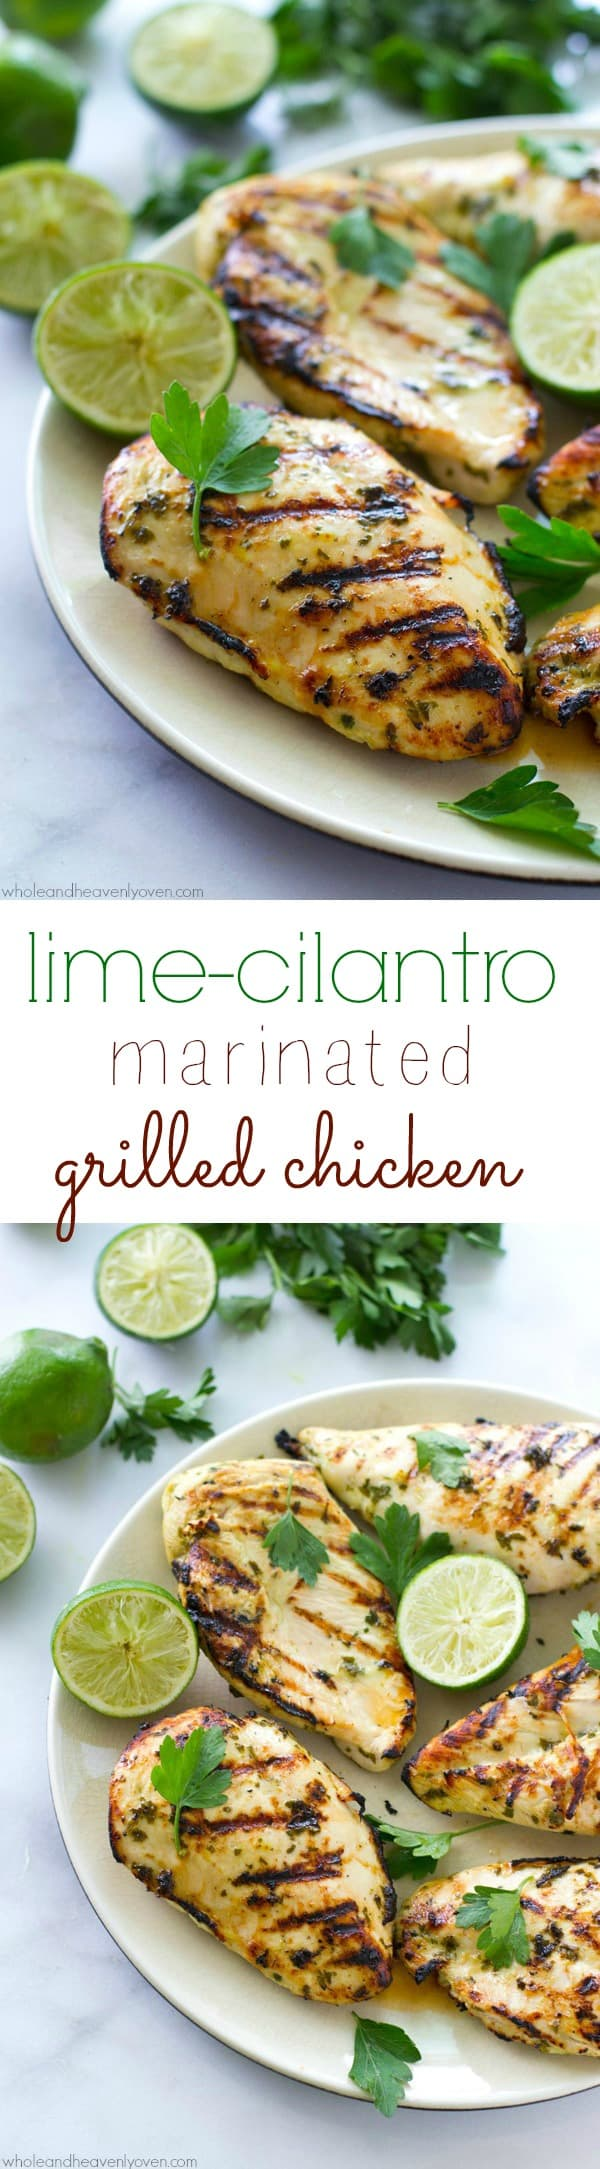 Marinated for hours in a flavorful lime cilantro marinade and then thrown onto the grill, this extra-juicy chicken delivers a punch of irresistible summer flavors! @WholeHeavenly